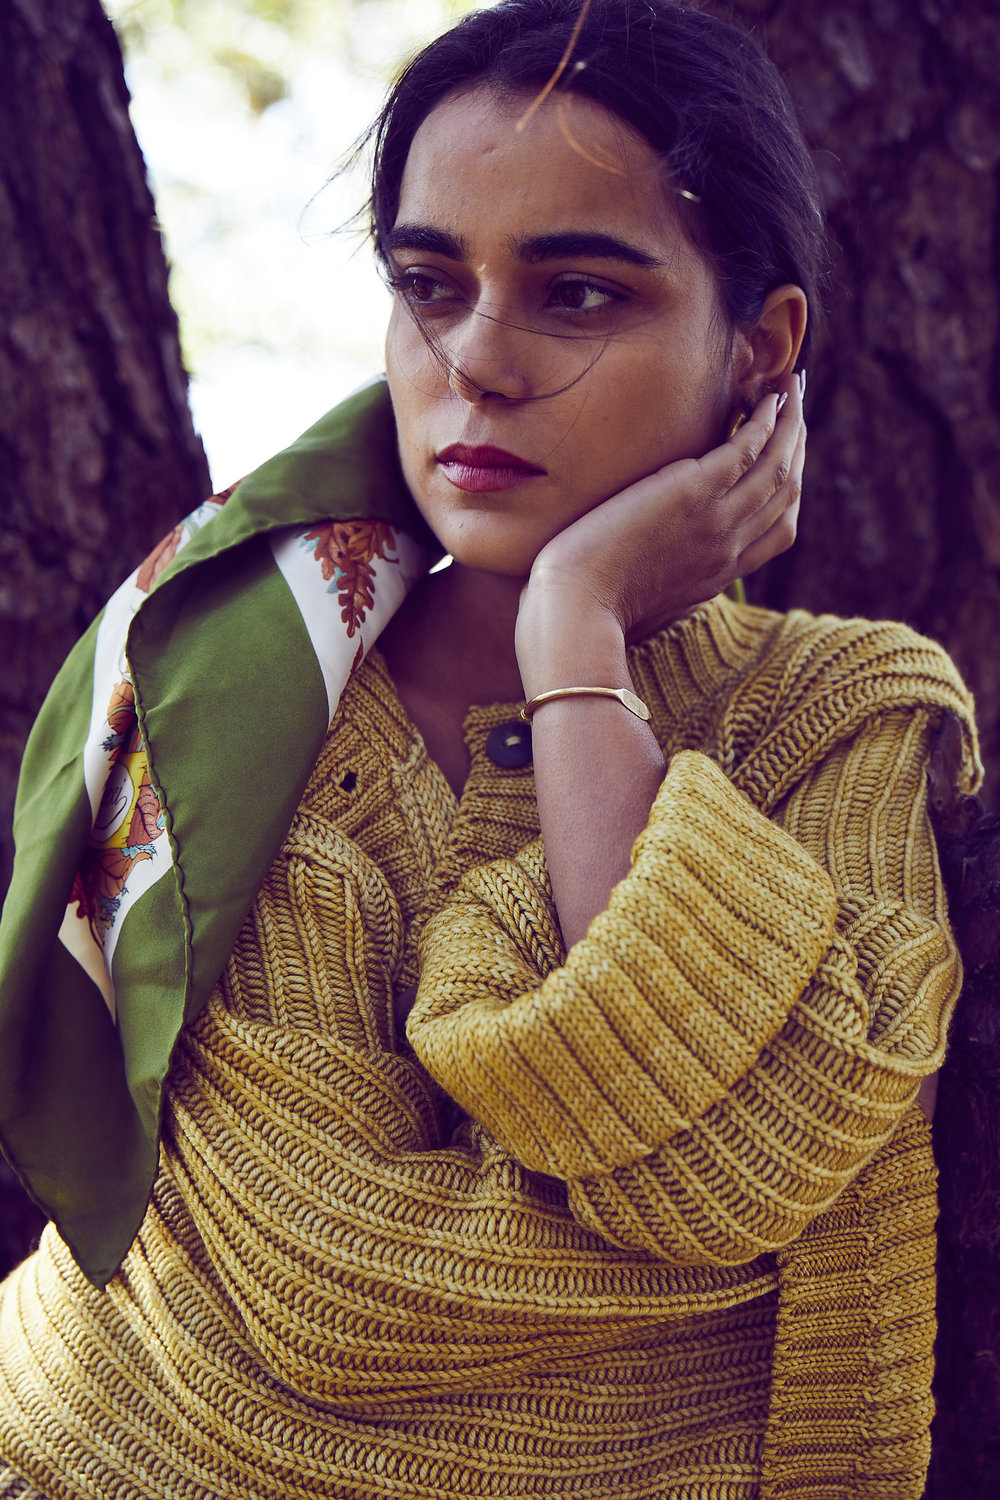 - Vivian on our shoot wearing her own vintage gucci scarf.Worn with studio cardigan in winter wheat     photo: Leonard Greco